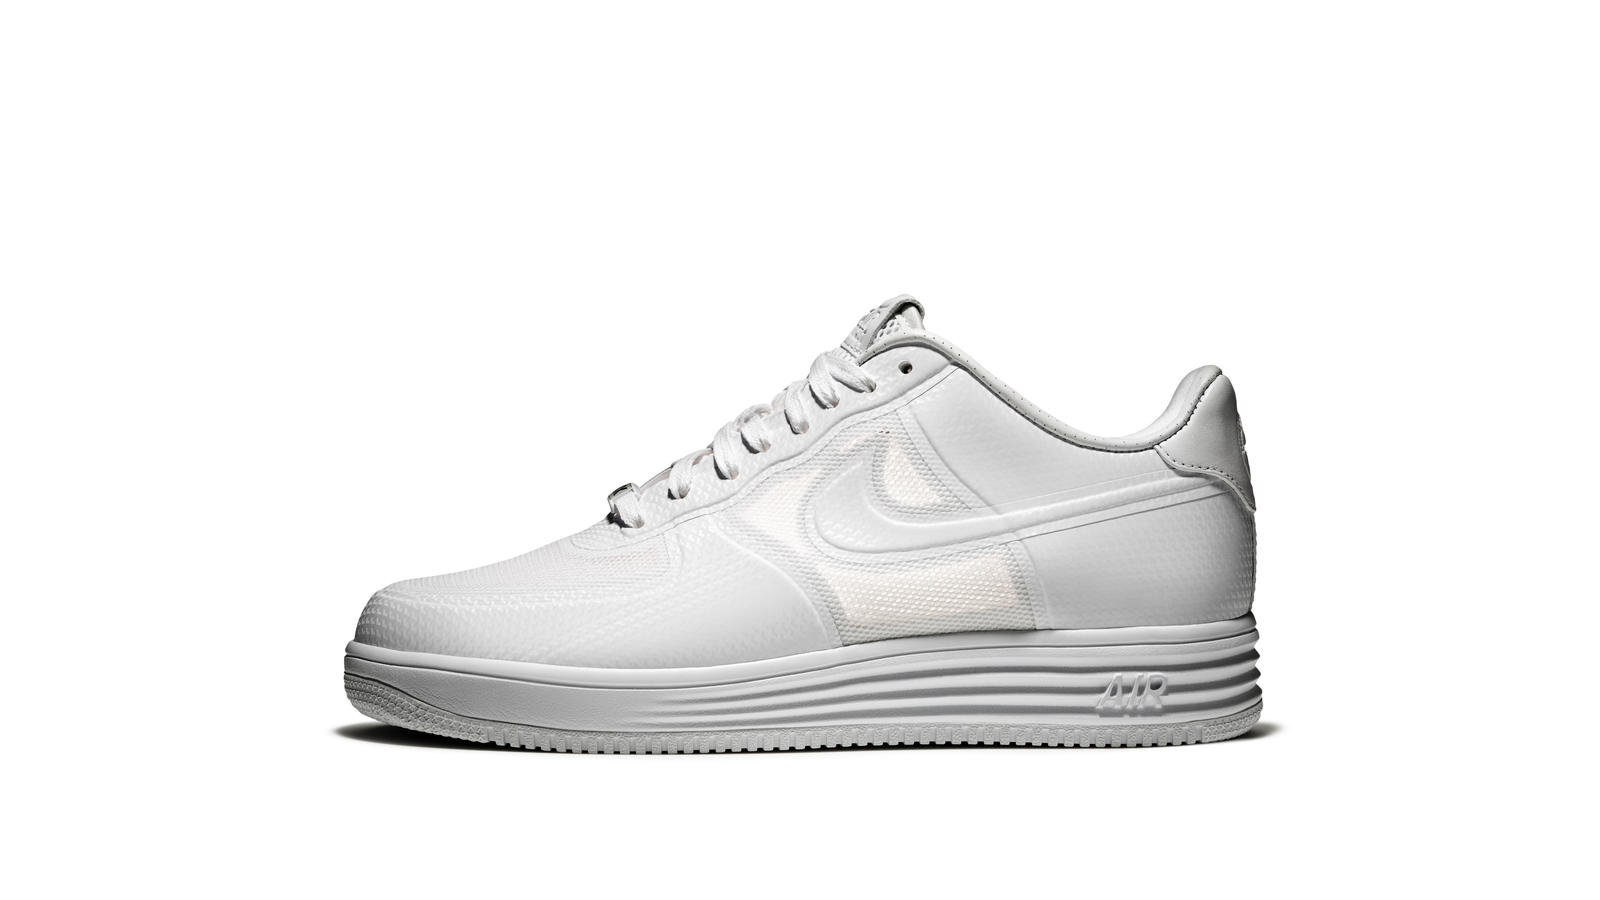 2air force 1 lunar